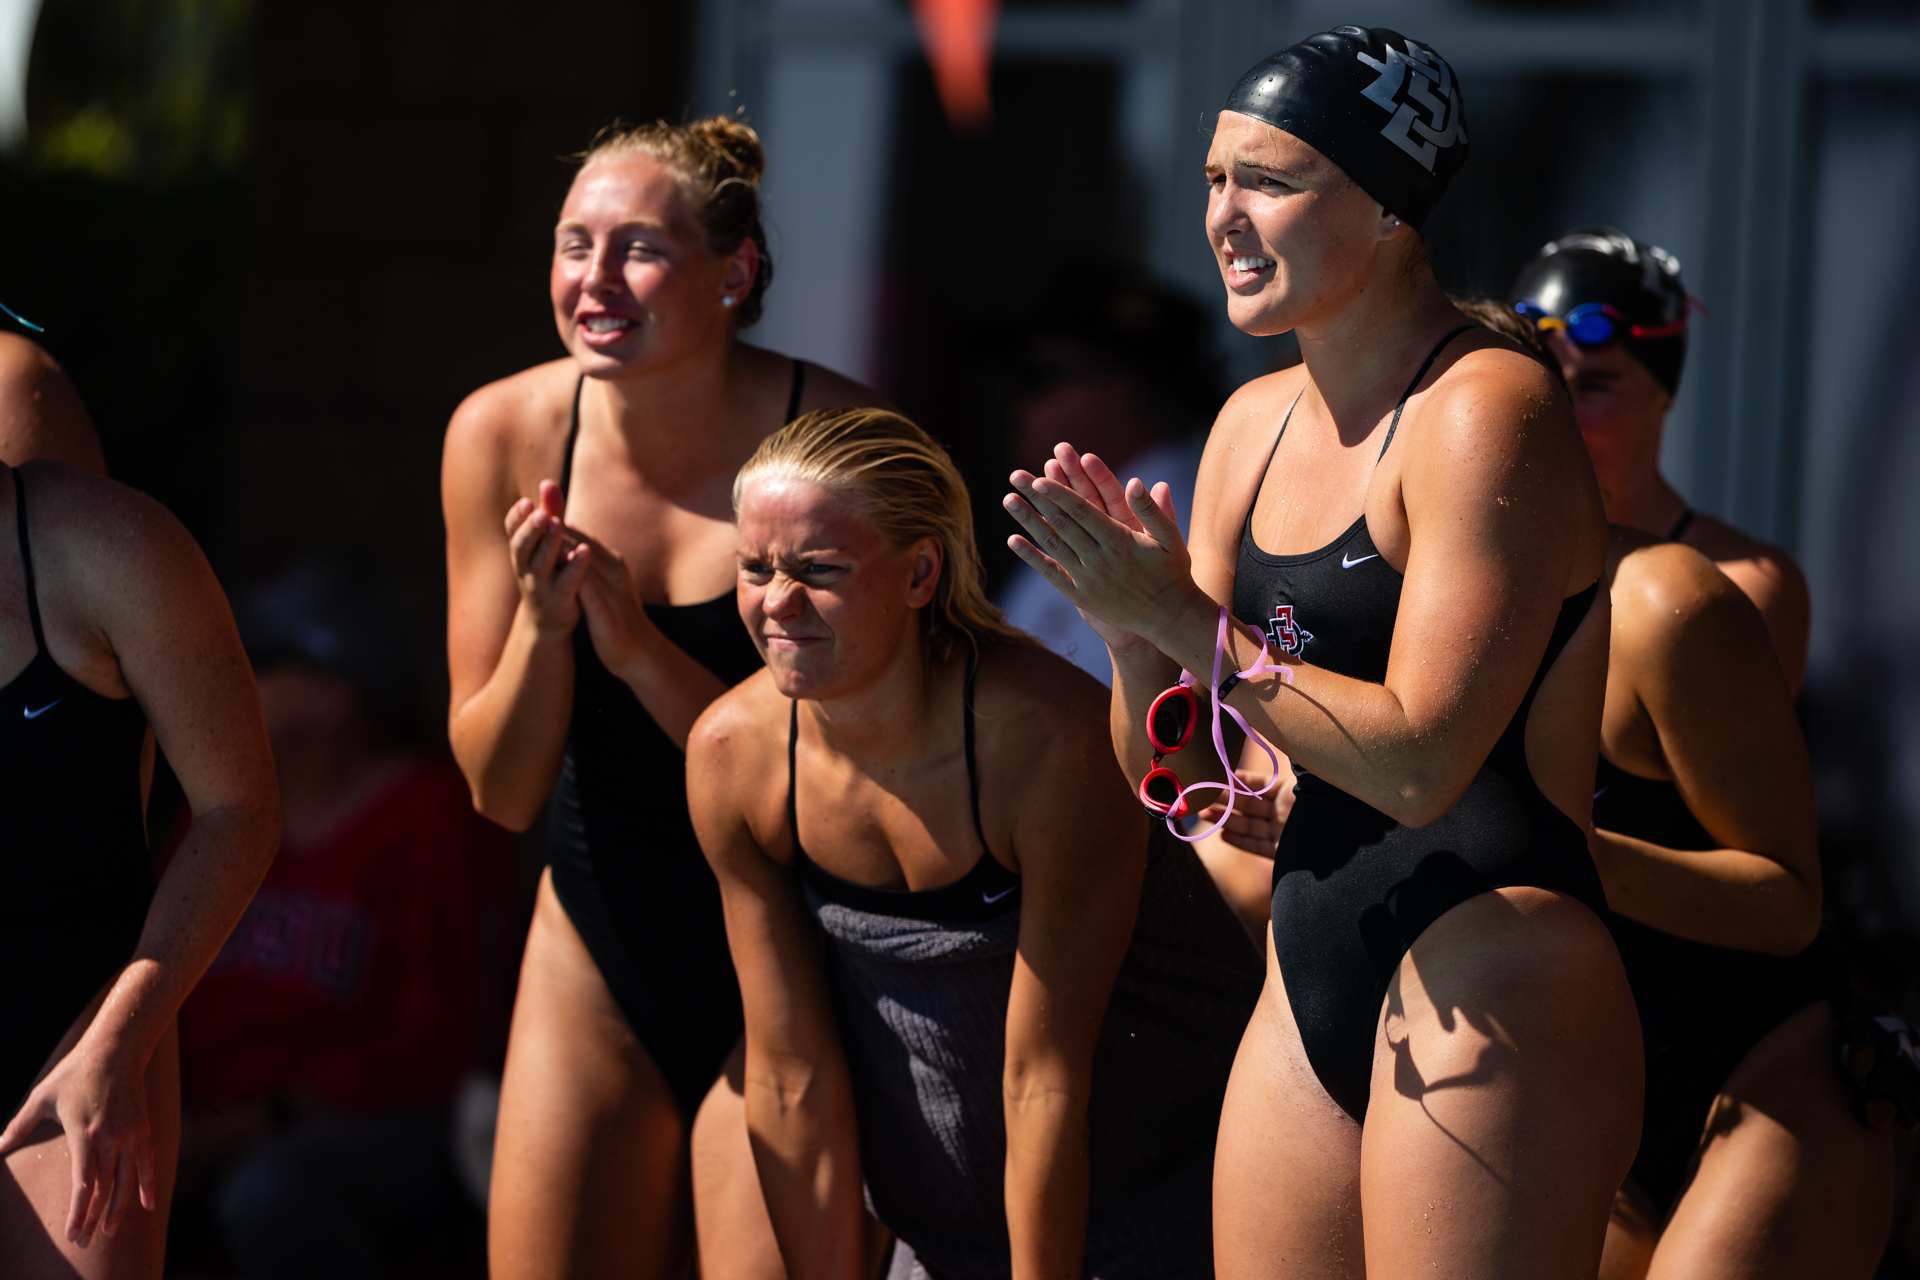 Swim dive claims second at chick fil a invite san diego - San diego state university swimming pool ...